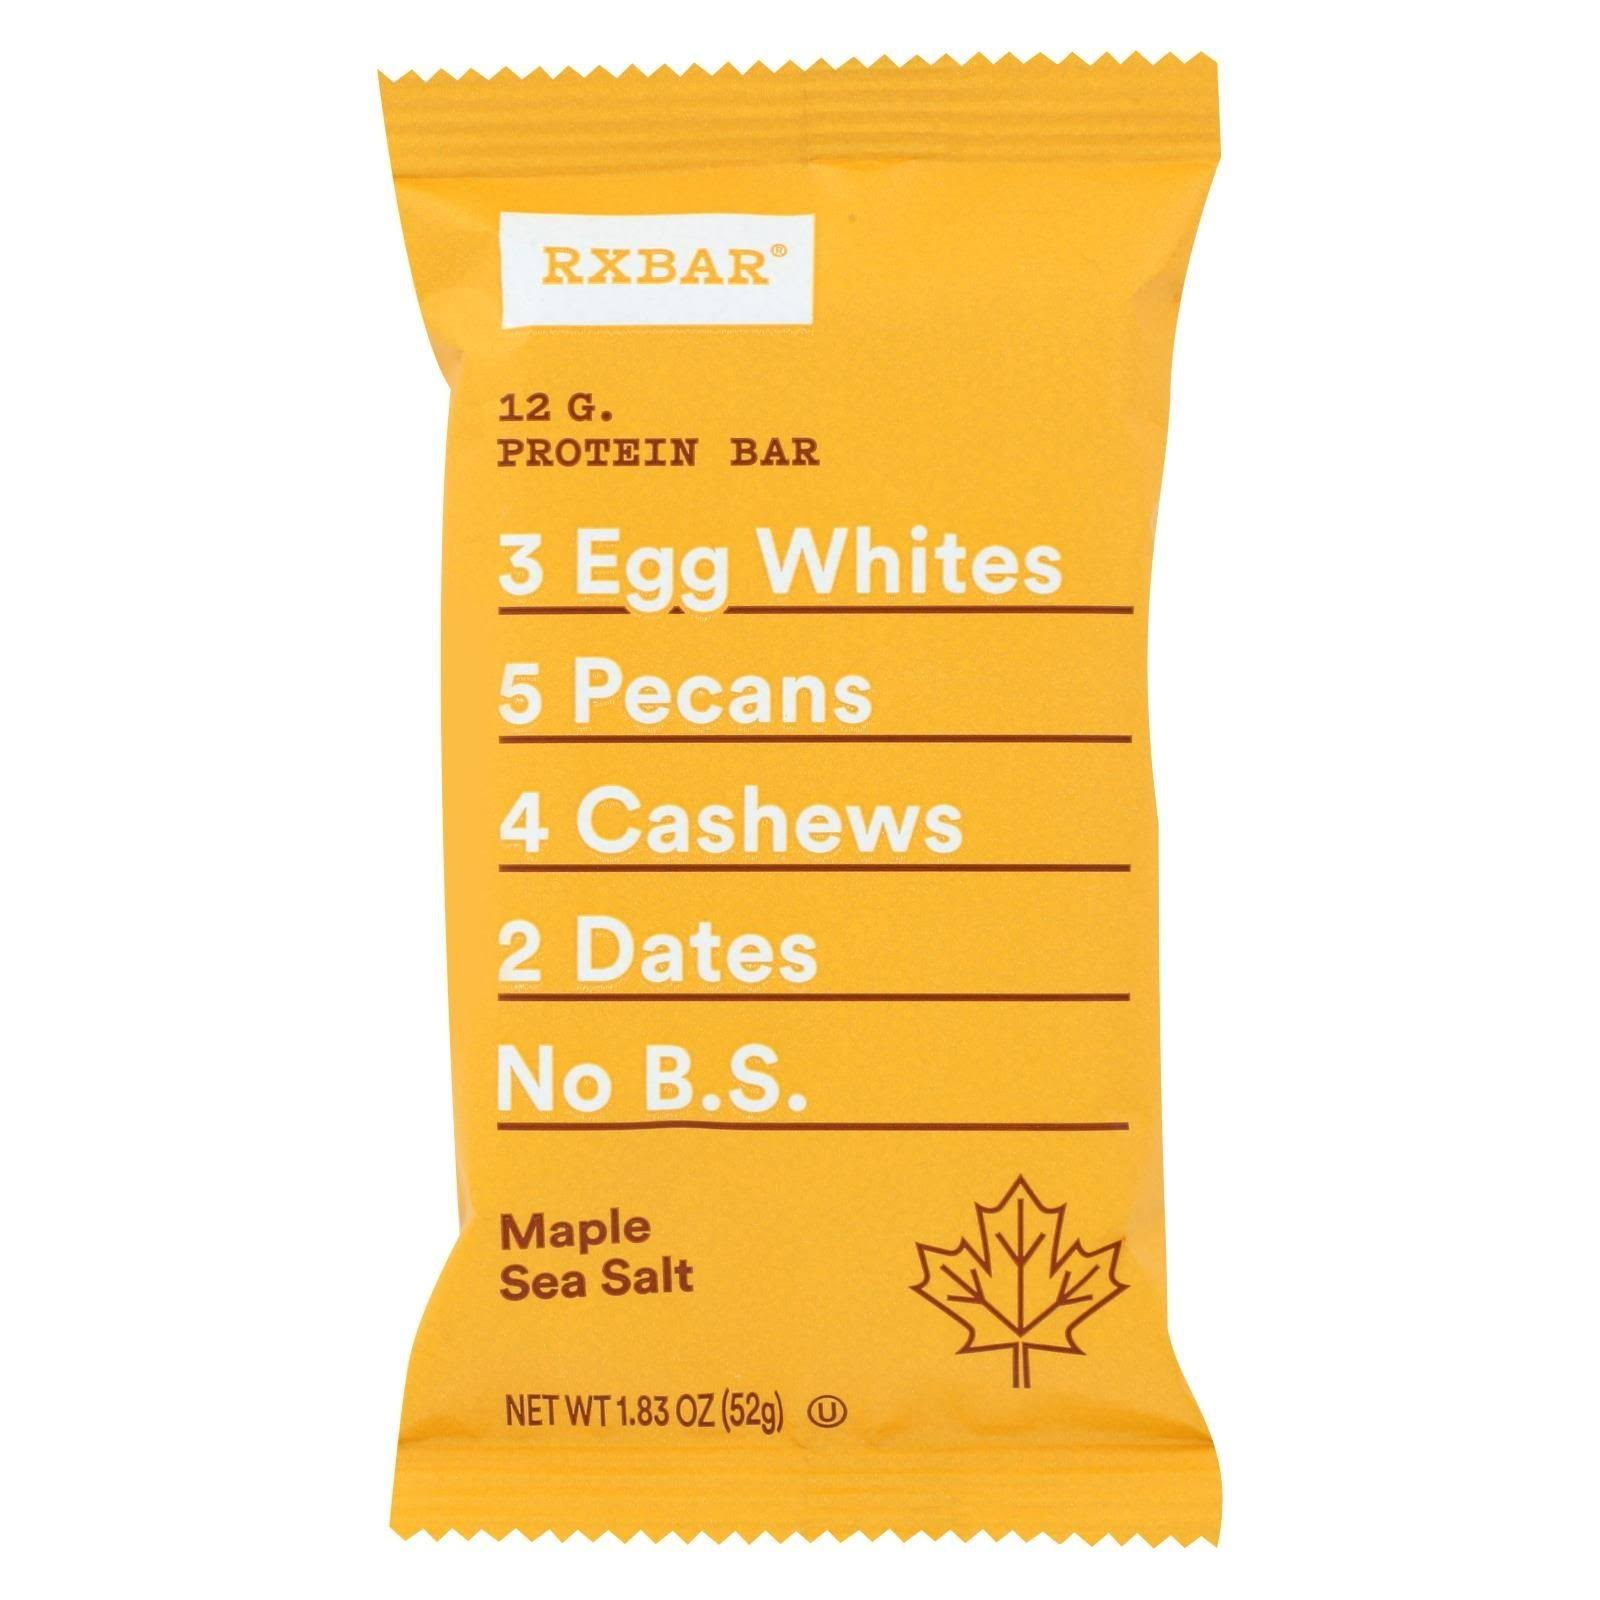 Rxbar Real Food Protein Bar - Maple Sea Salt, 12pcs